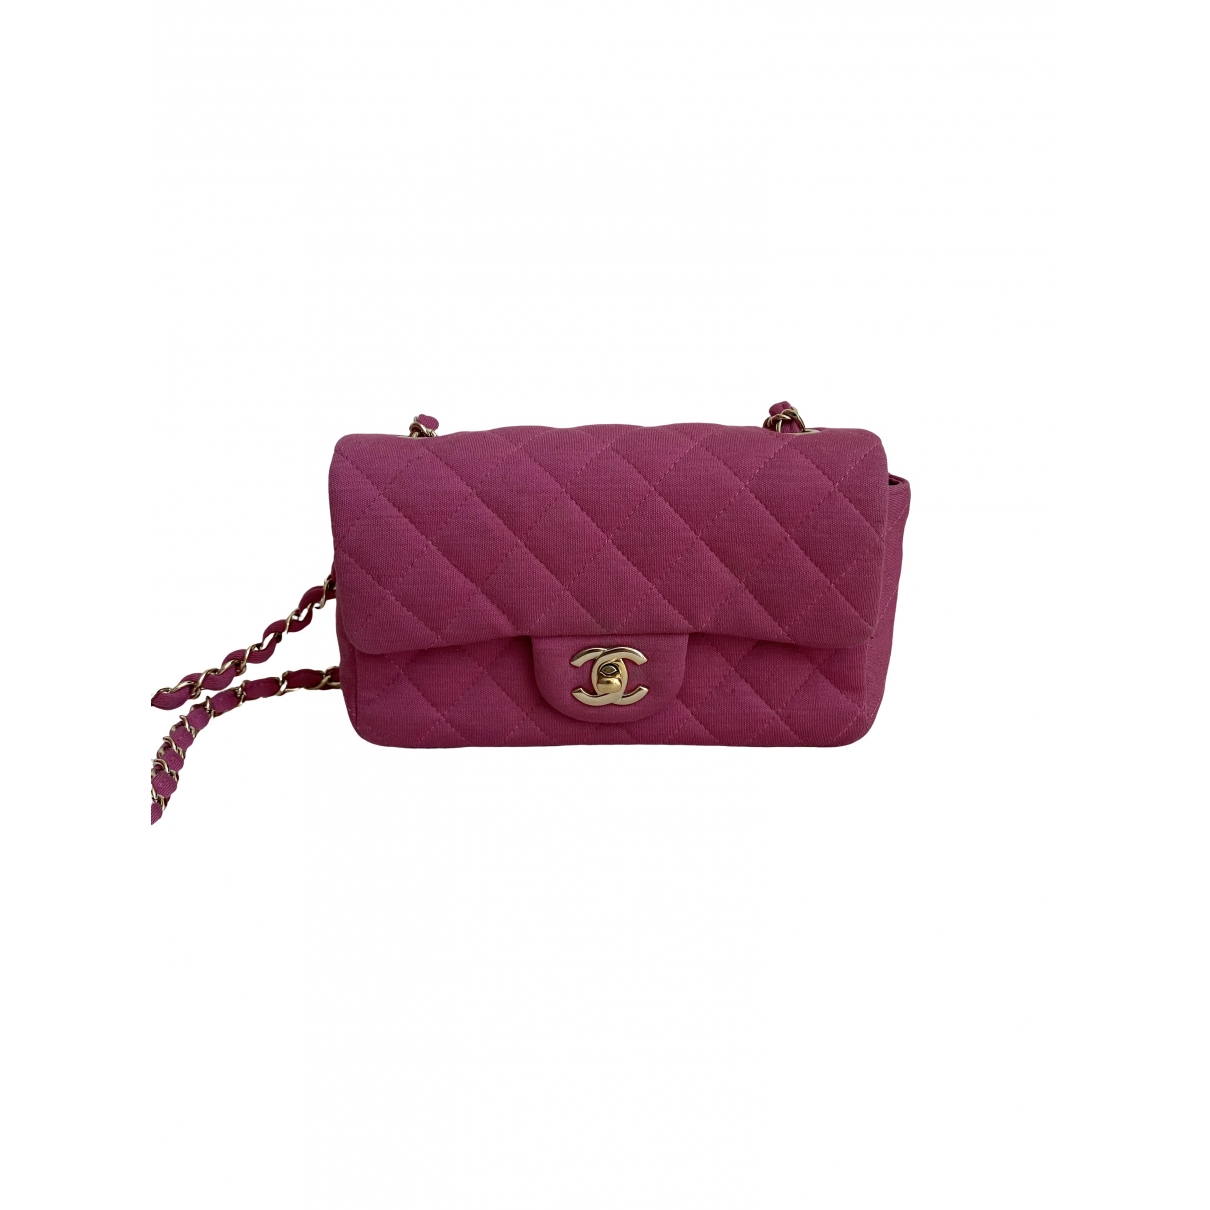 Chanel Timeless/Classique Pink Cloth handbag for Women \N